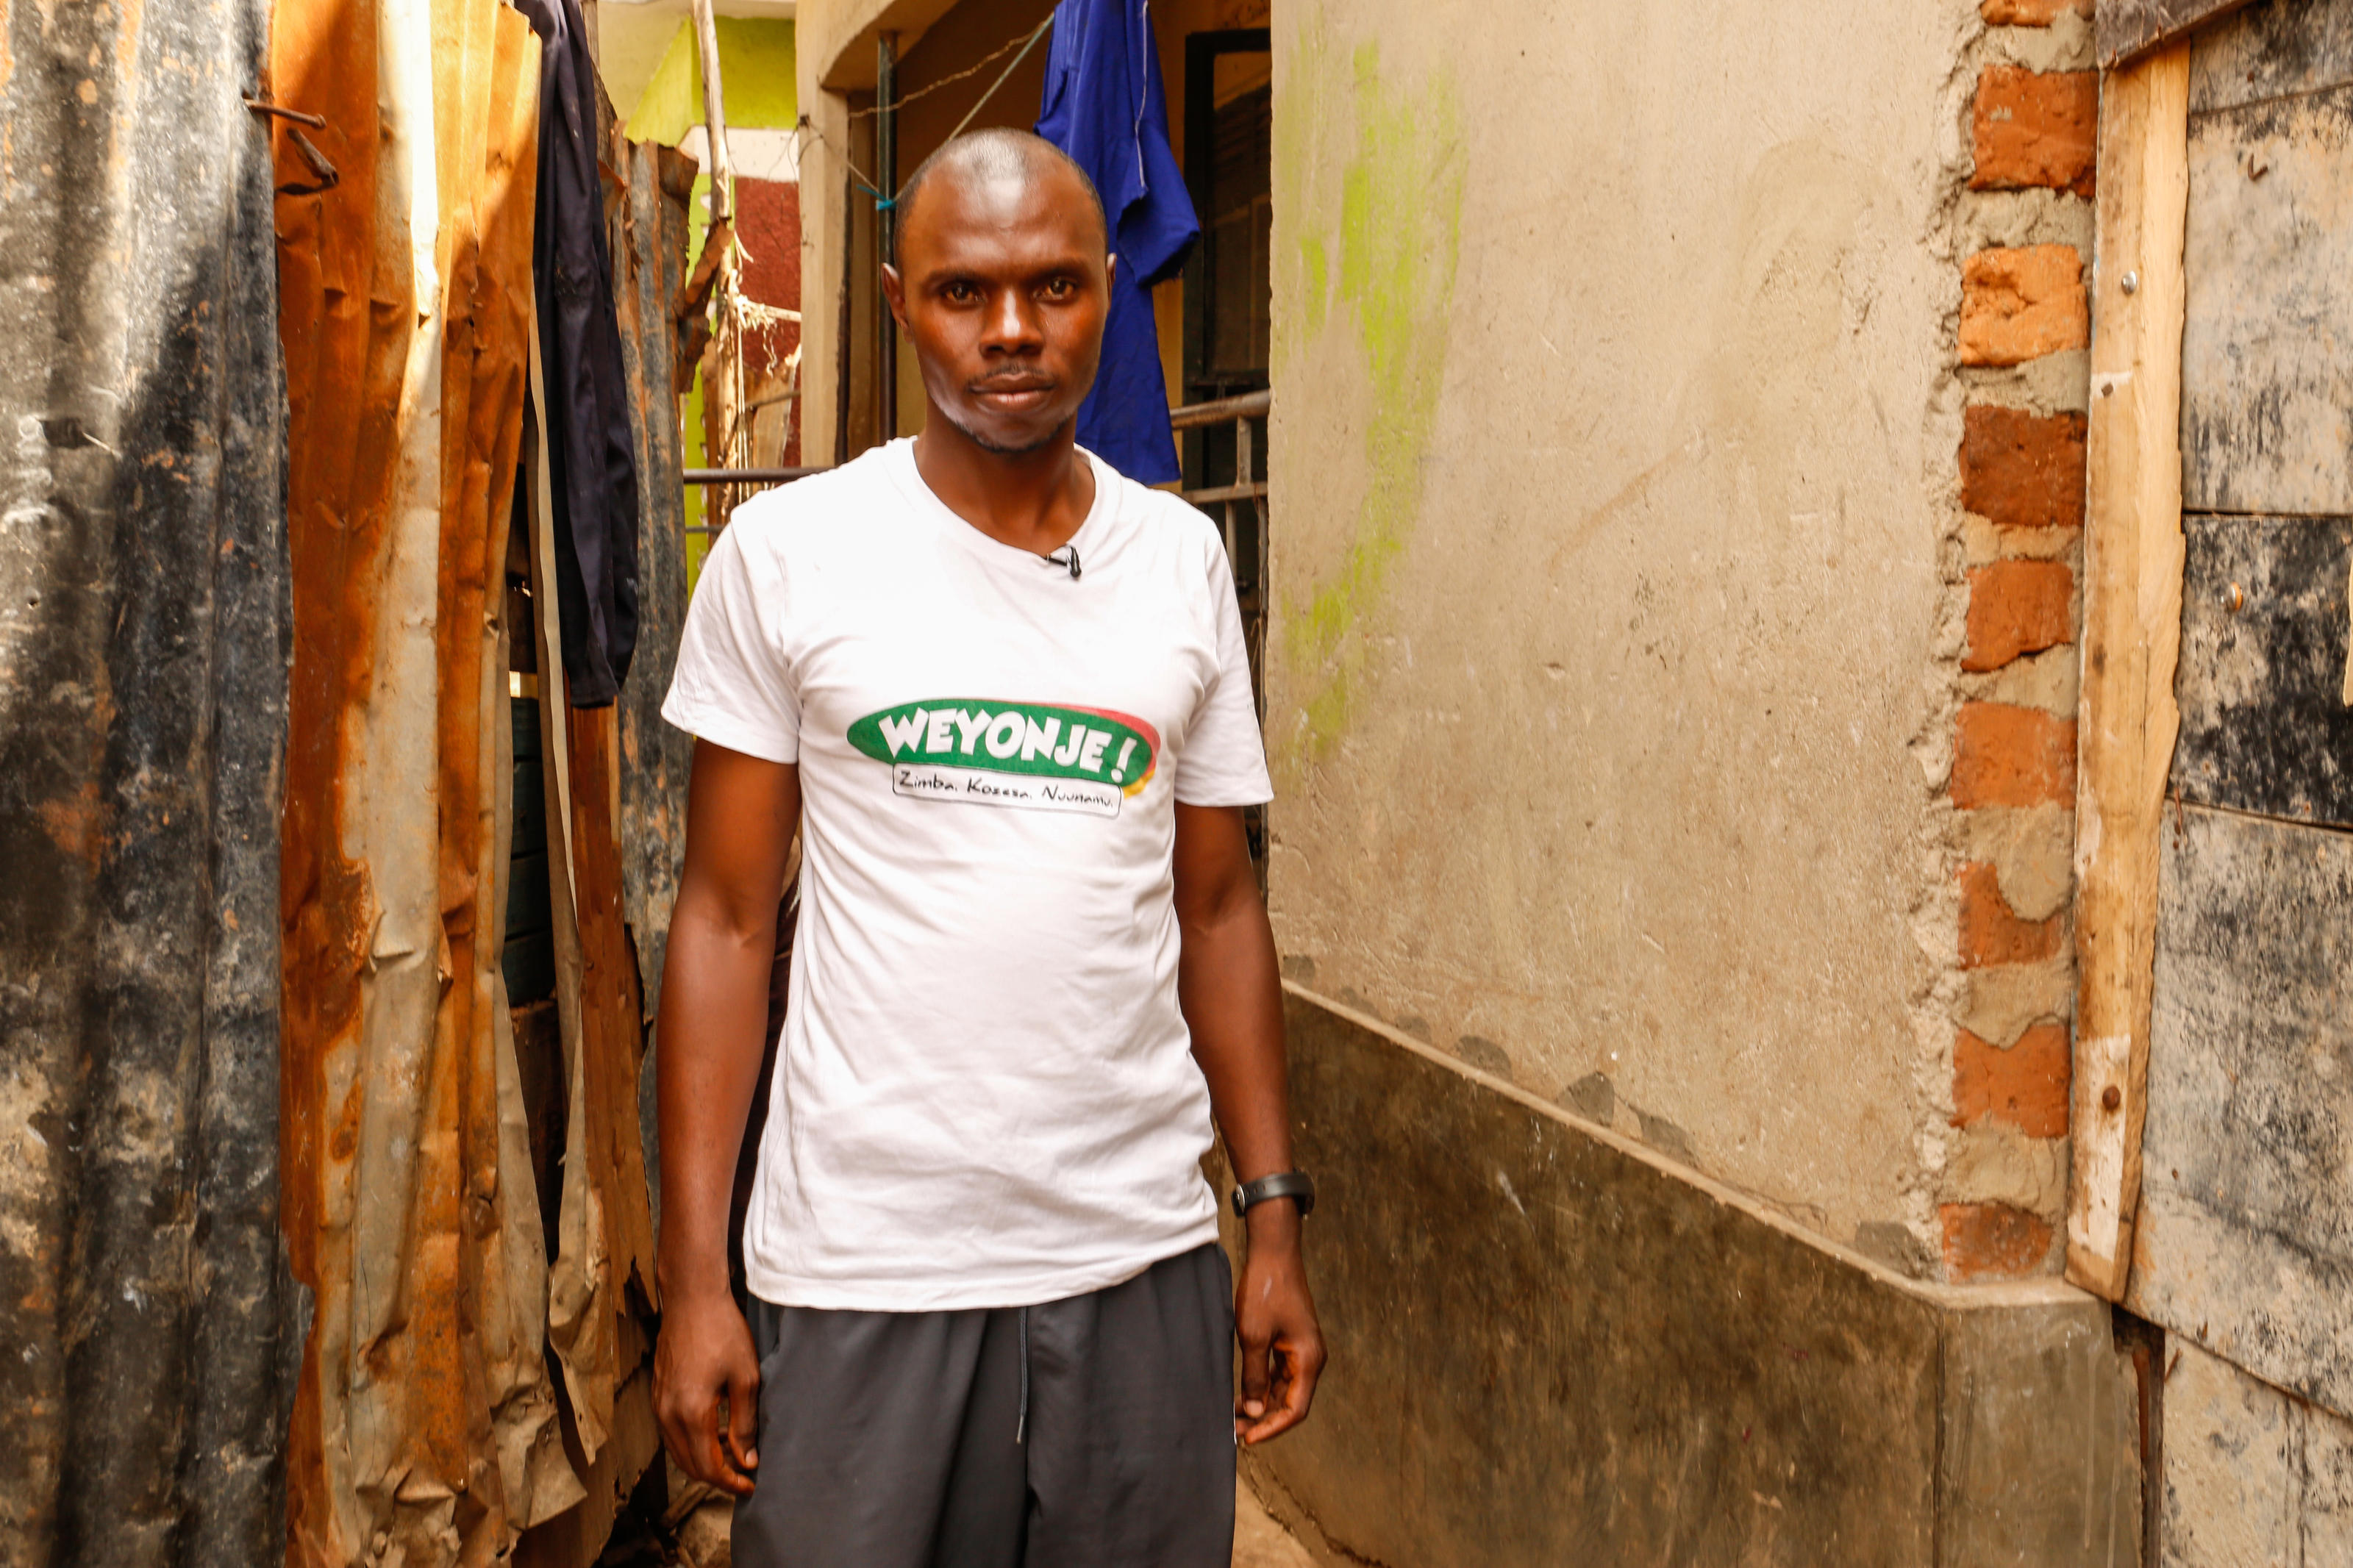 Tumwine Christopher, 31, leader of the Weyonje community group,  an action group for the improvement of WASH in Kamwokya II Parish, Kampala, Uganda, February 2019.